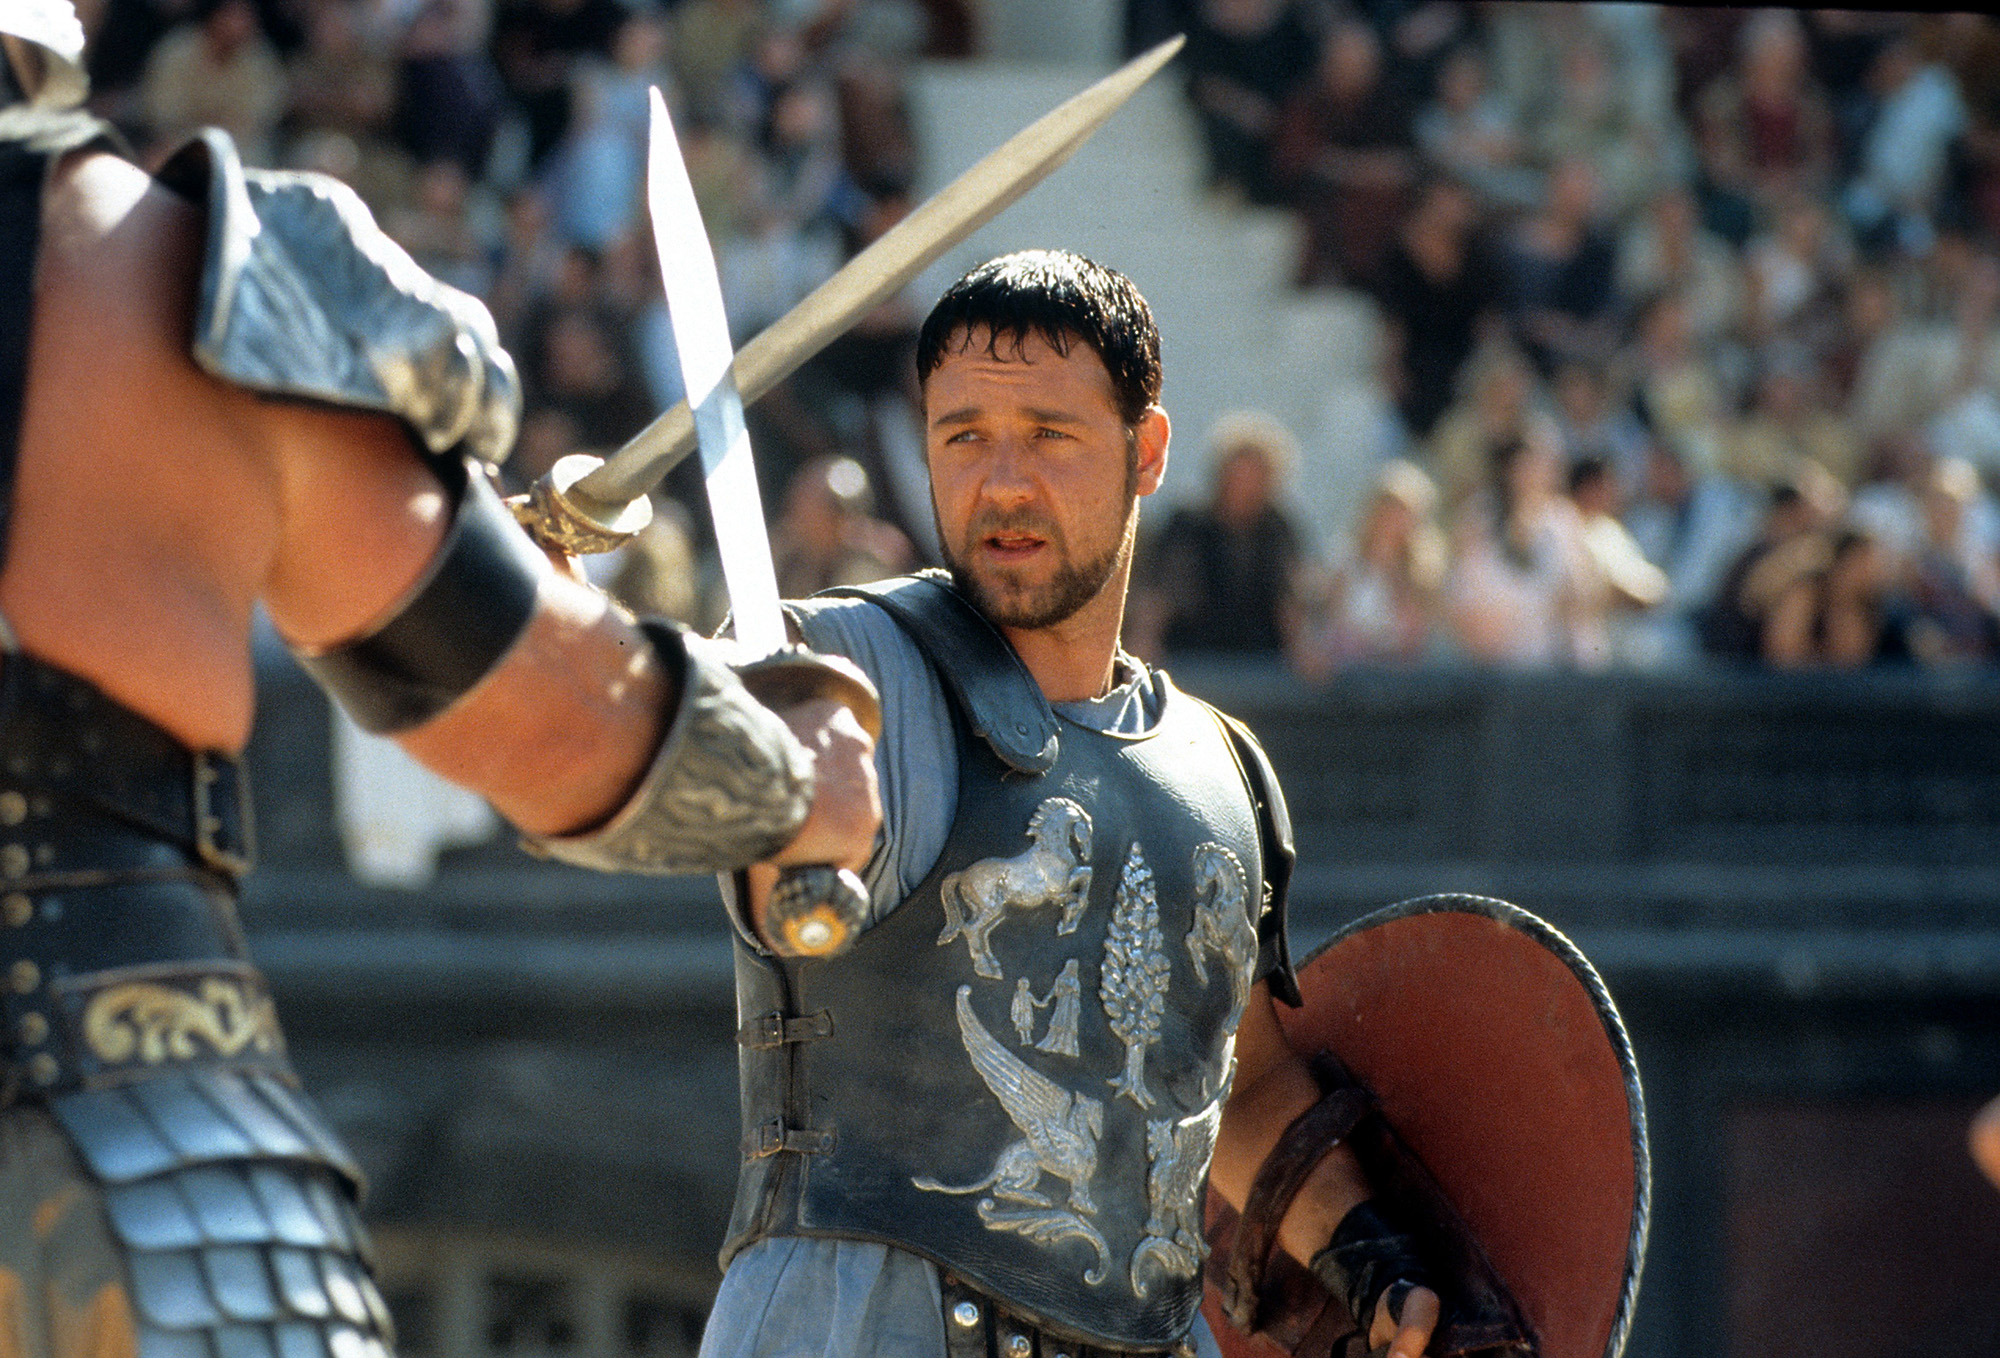 'Gladiator' to be screened in the Circo Massimo